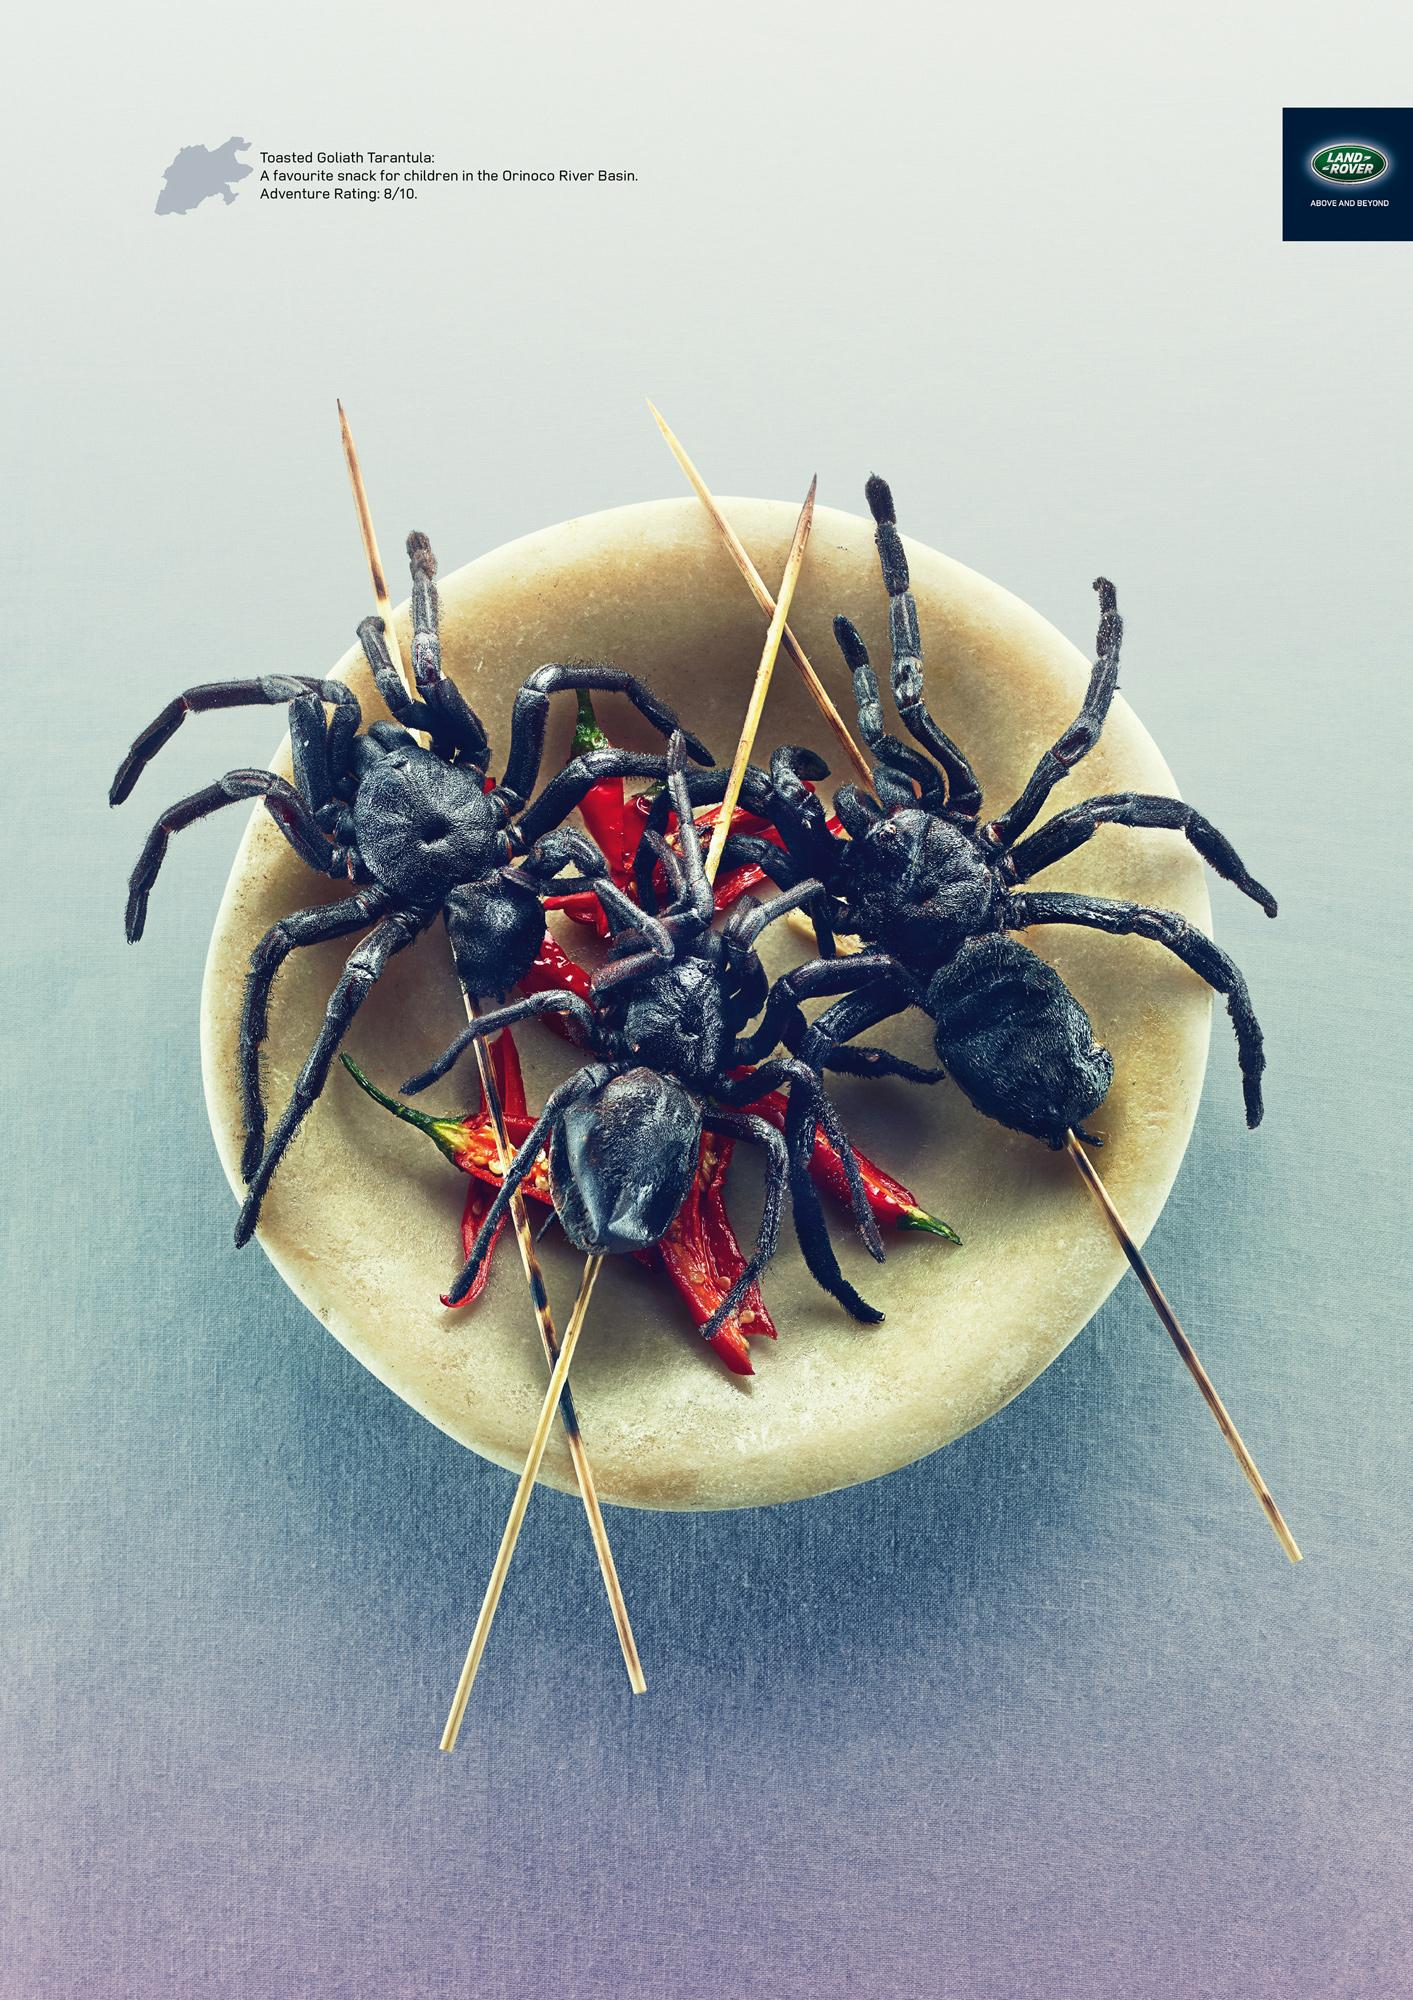 Land Rover Print Ad -  Eating Out, Goaliath Tarantula